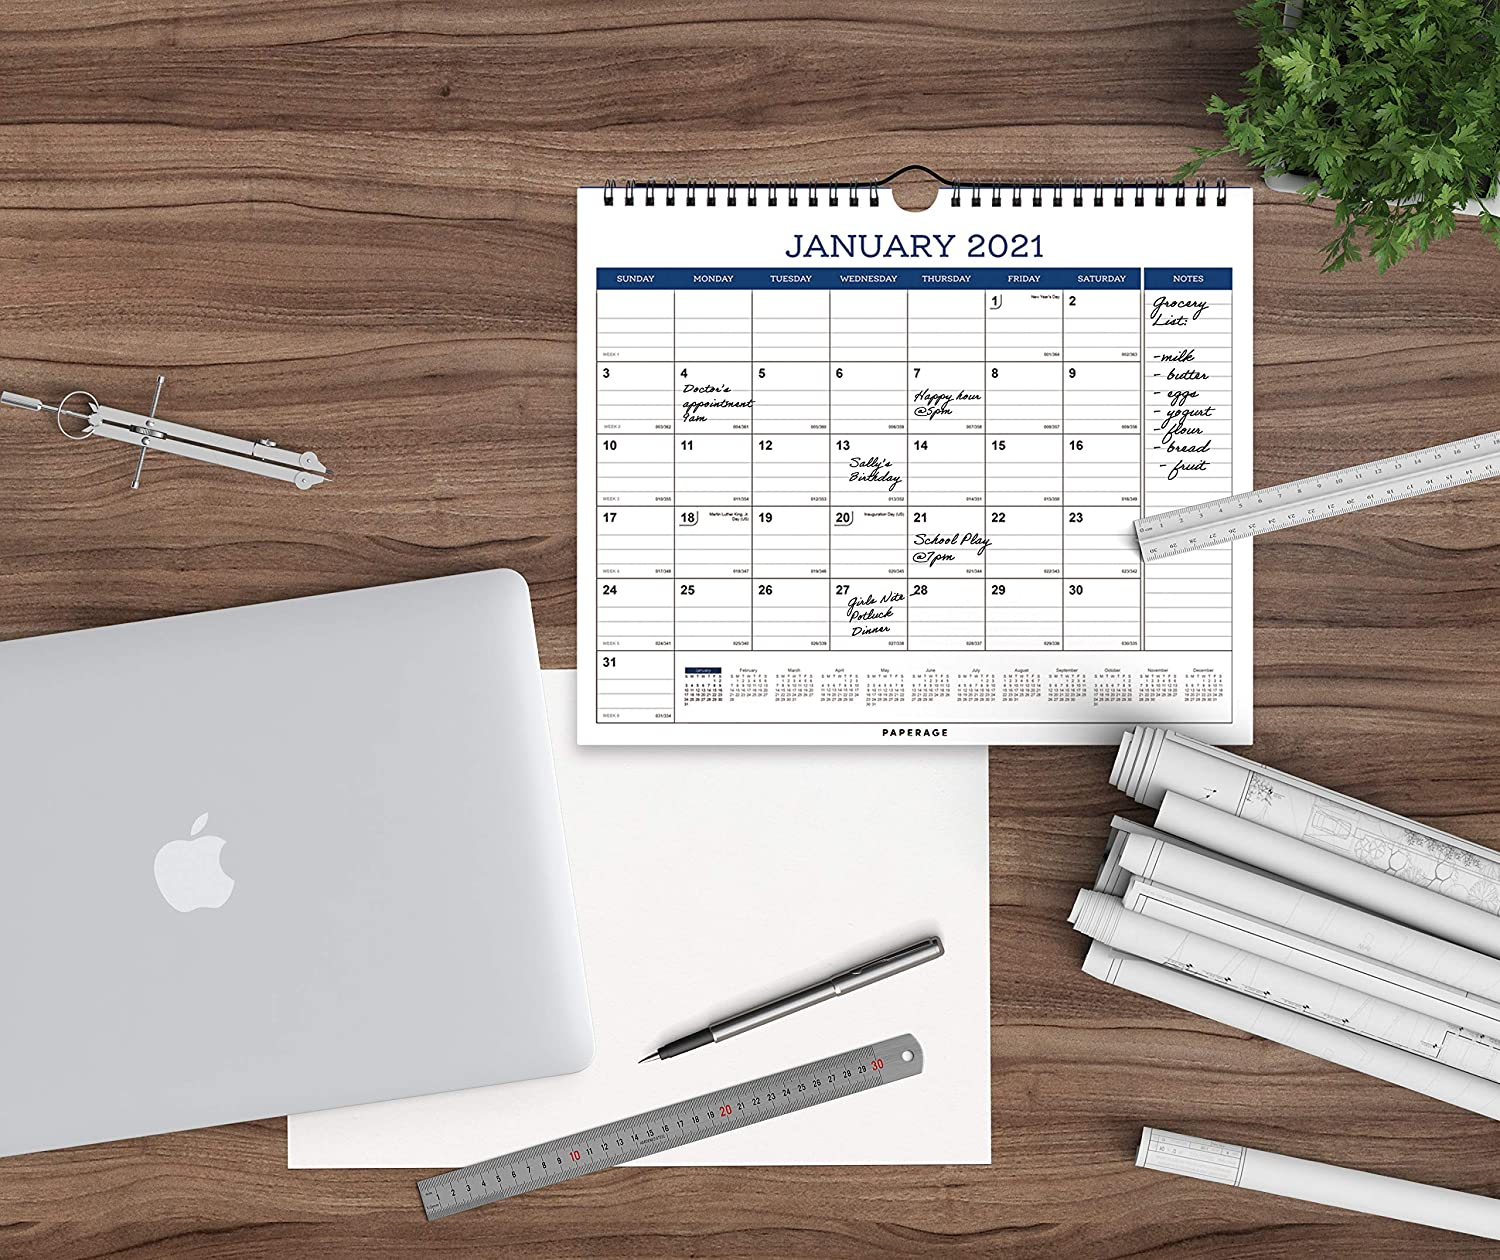 9 in by 11 in Yearly Plan- Navy Blue Minimal Design- for Office Calendar 2021-12 Months Ruled Blocks and Notes Premium Thick Paper School Tear Off Pages Wall and Desk Calendar